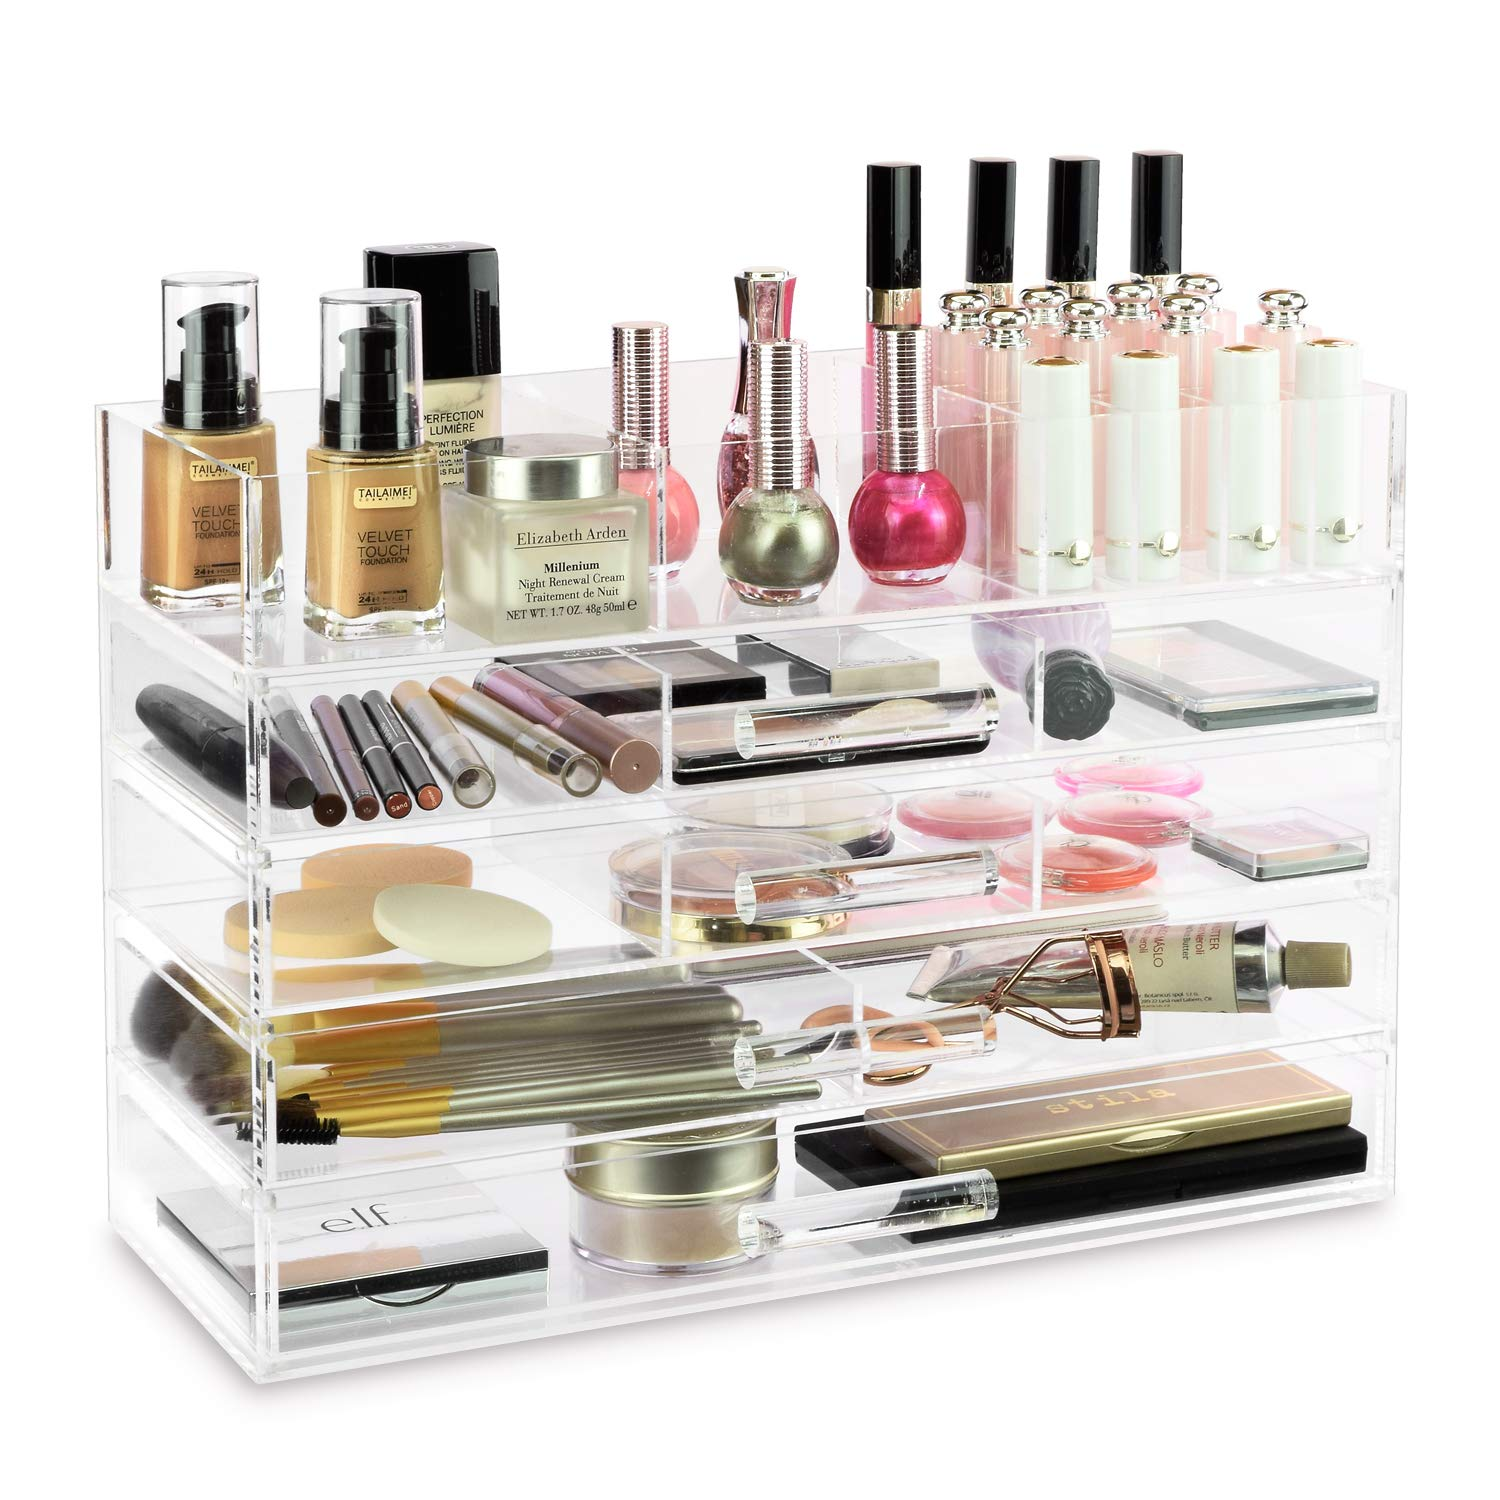 f541b0ef34cc Ikee Design Large Clear Acrylic Jewelry Accessory & Cosmetic Storage  Display Boxes